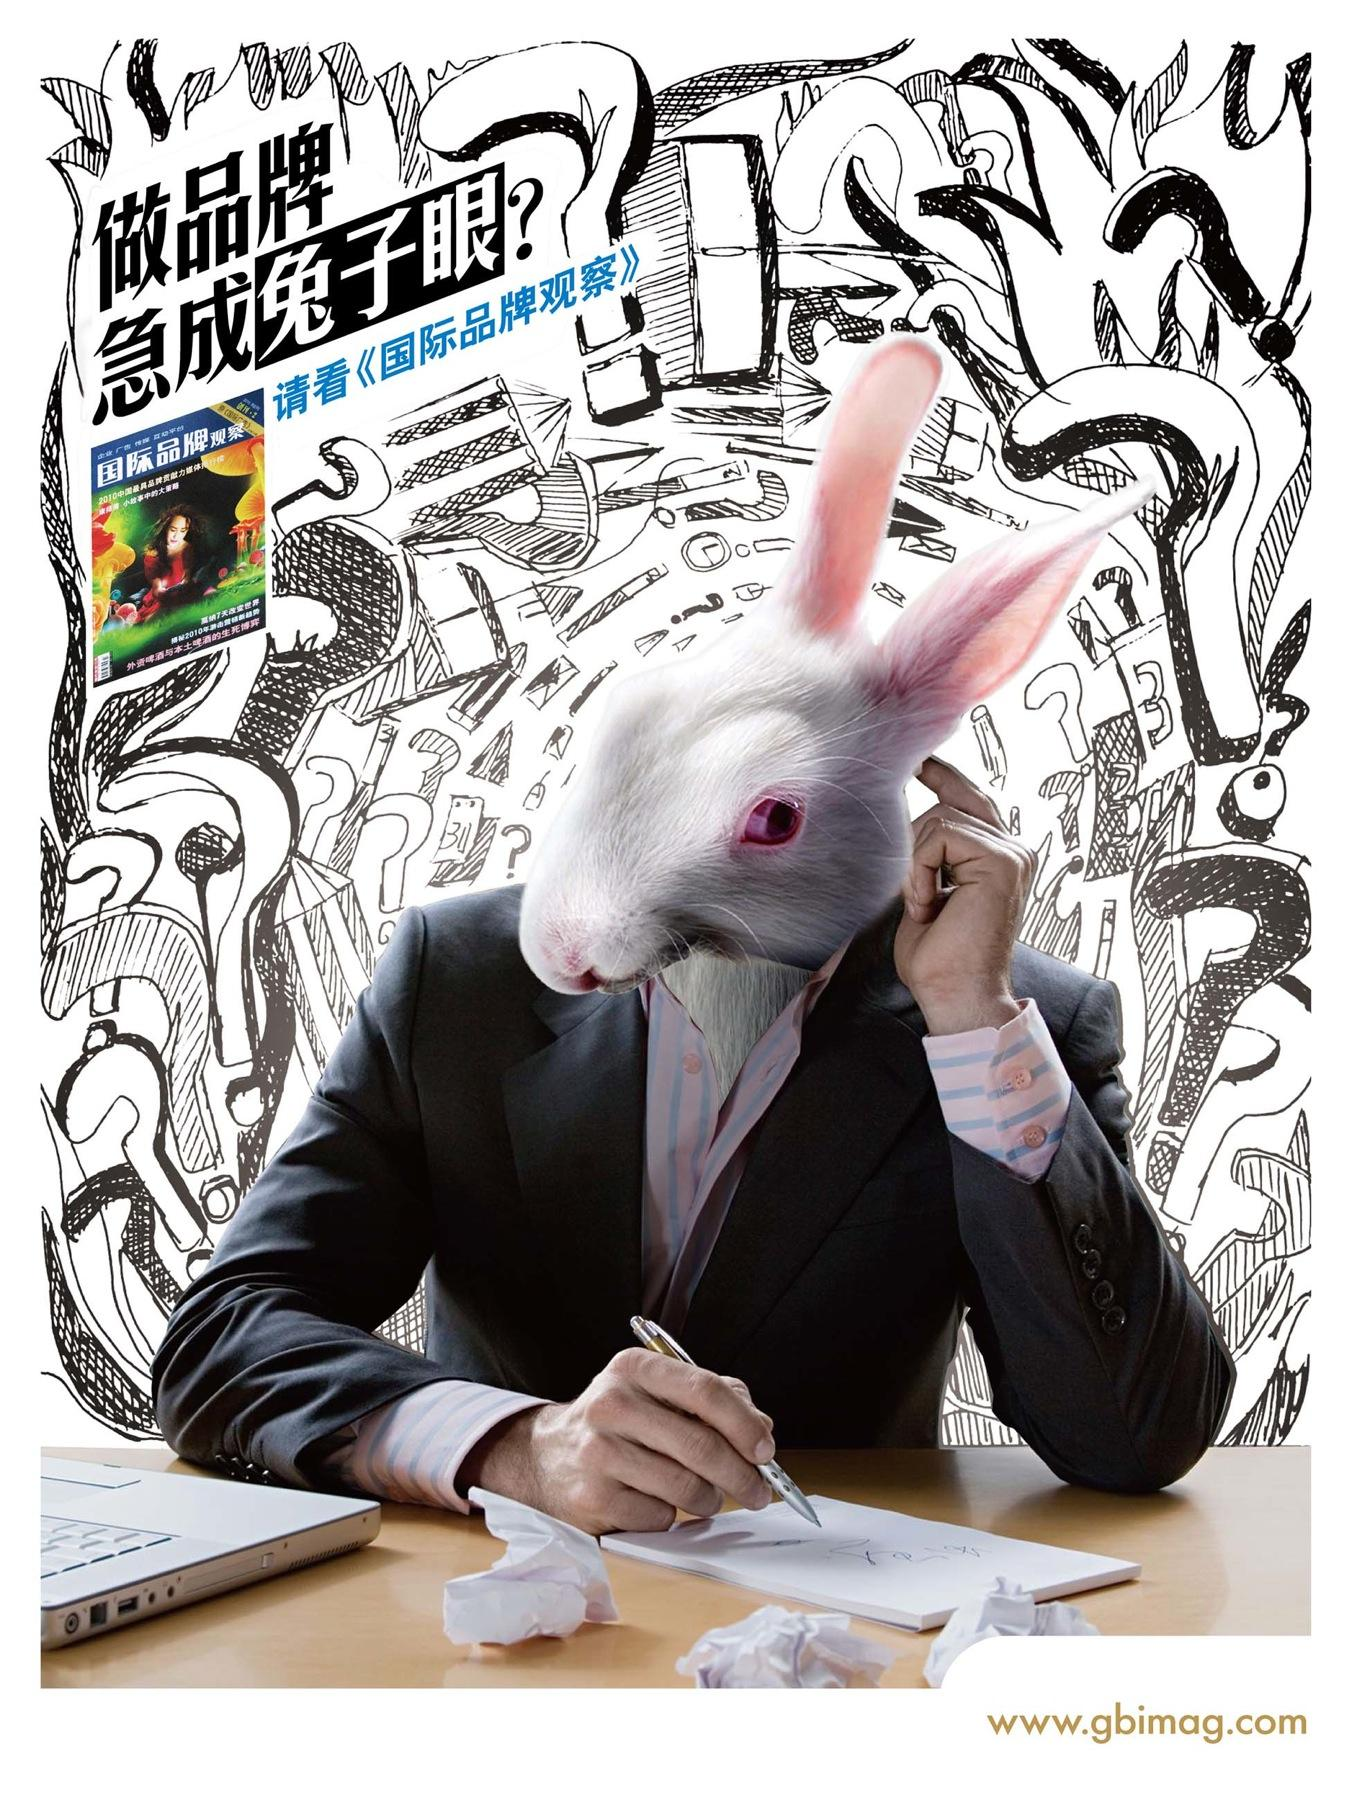 Global Brand Insight Print Ad -  Bunny